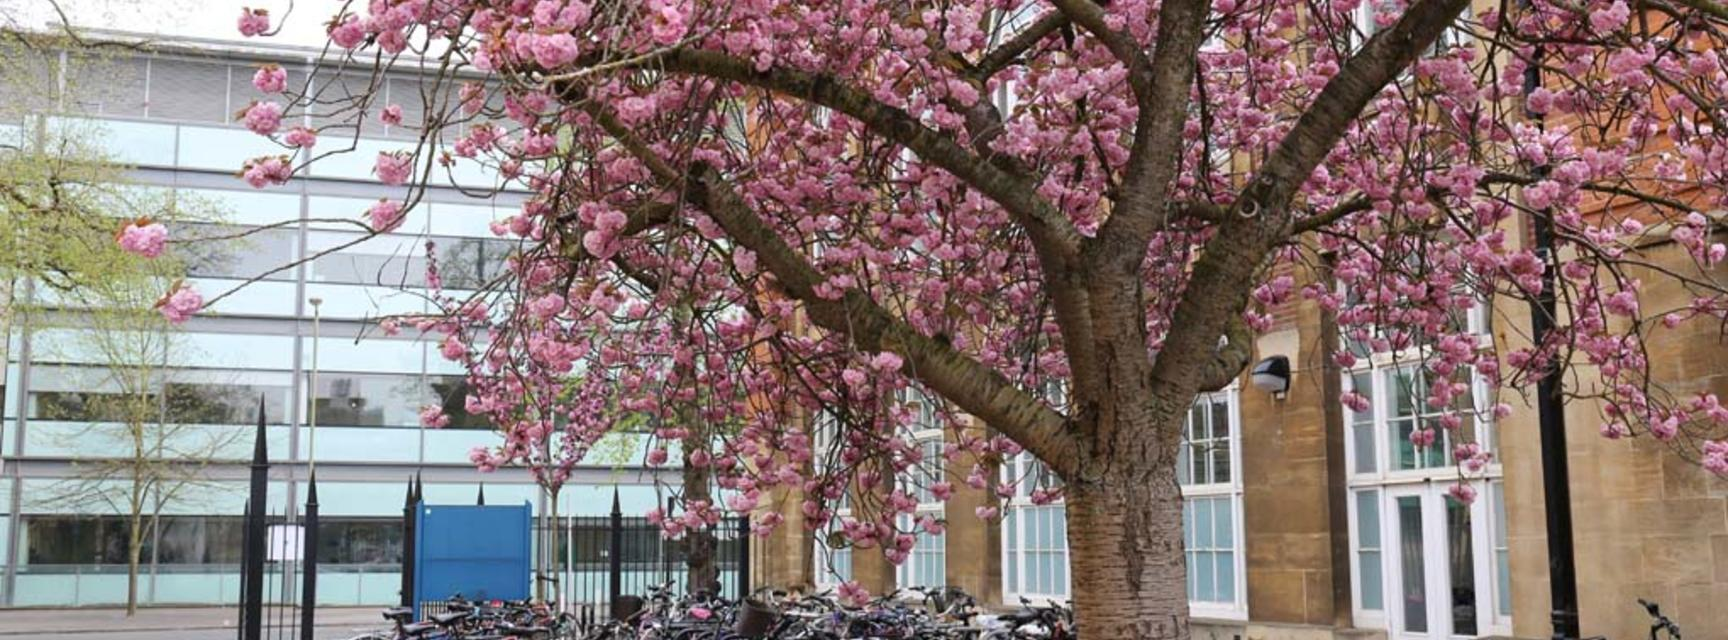 Photo of may blossom outside the Dyson Perrins Building with Chemistry Teaching Lab in background